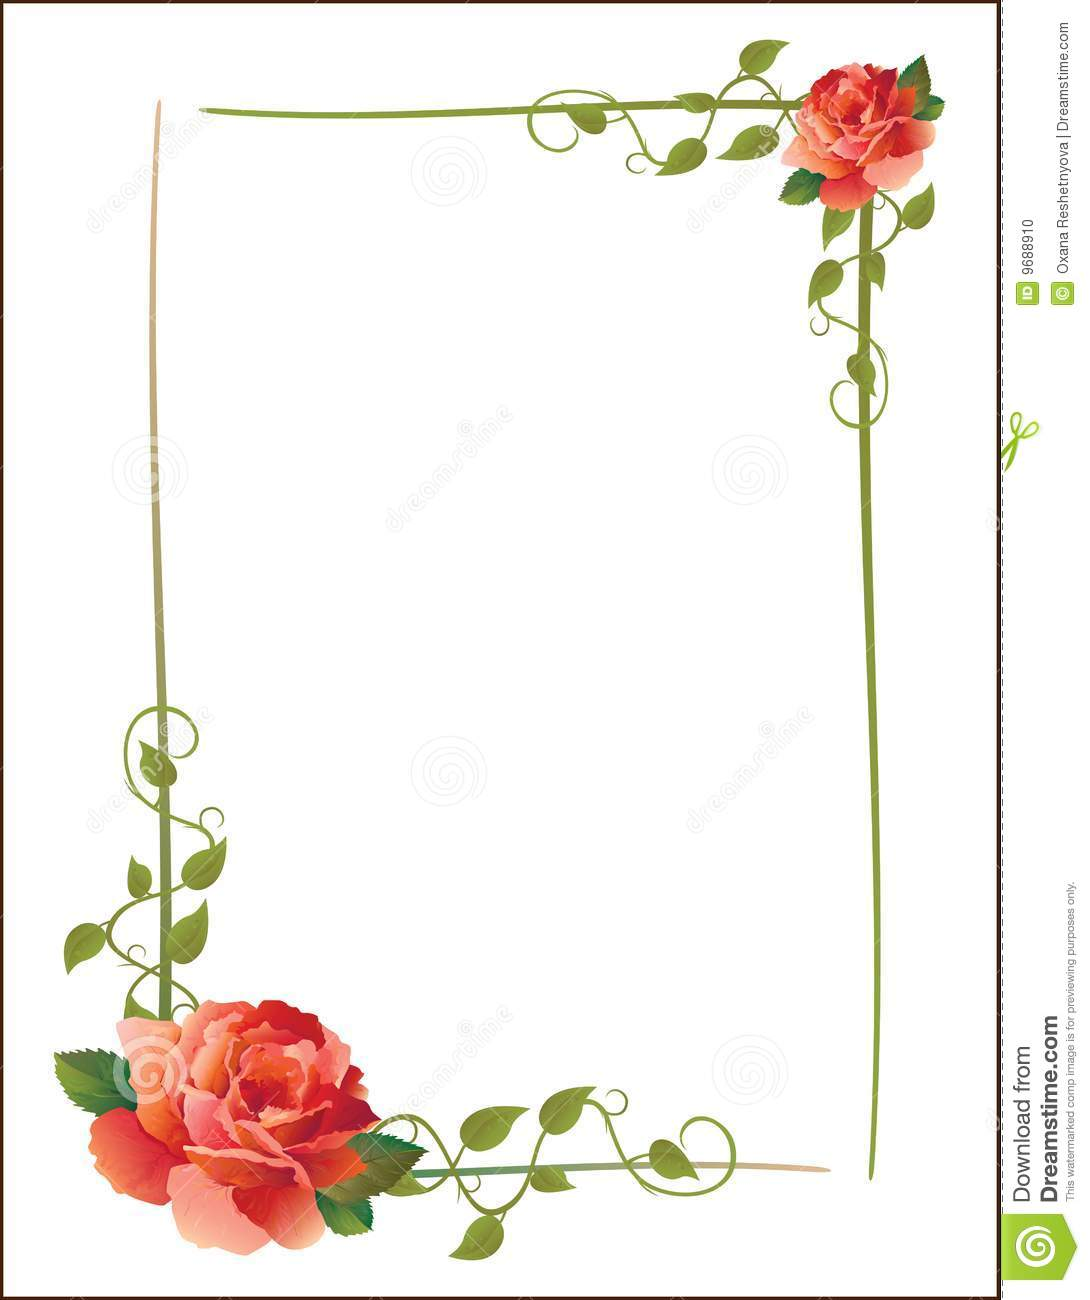 Vintage Frame With Roses Stock Photo Image 9688910